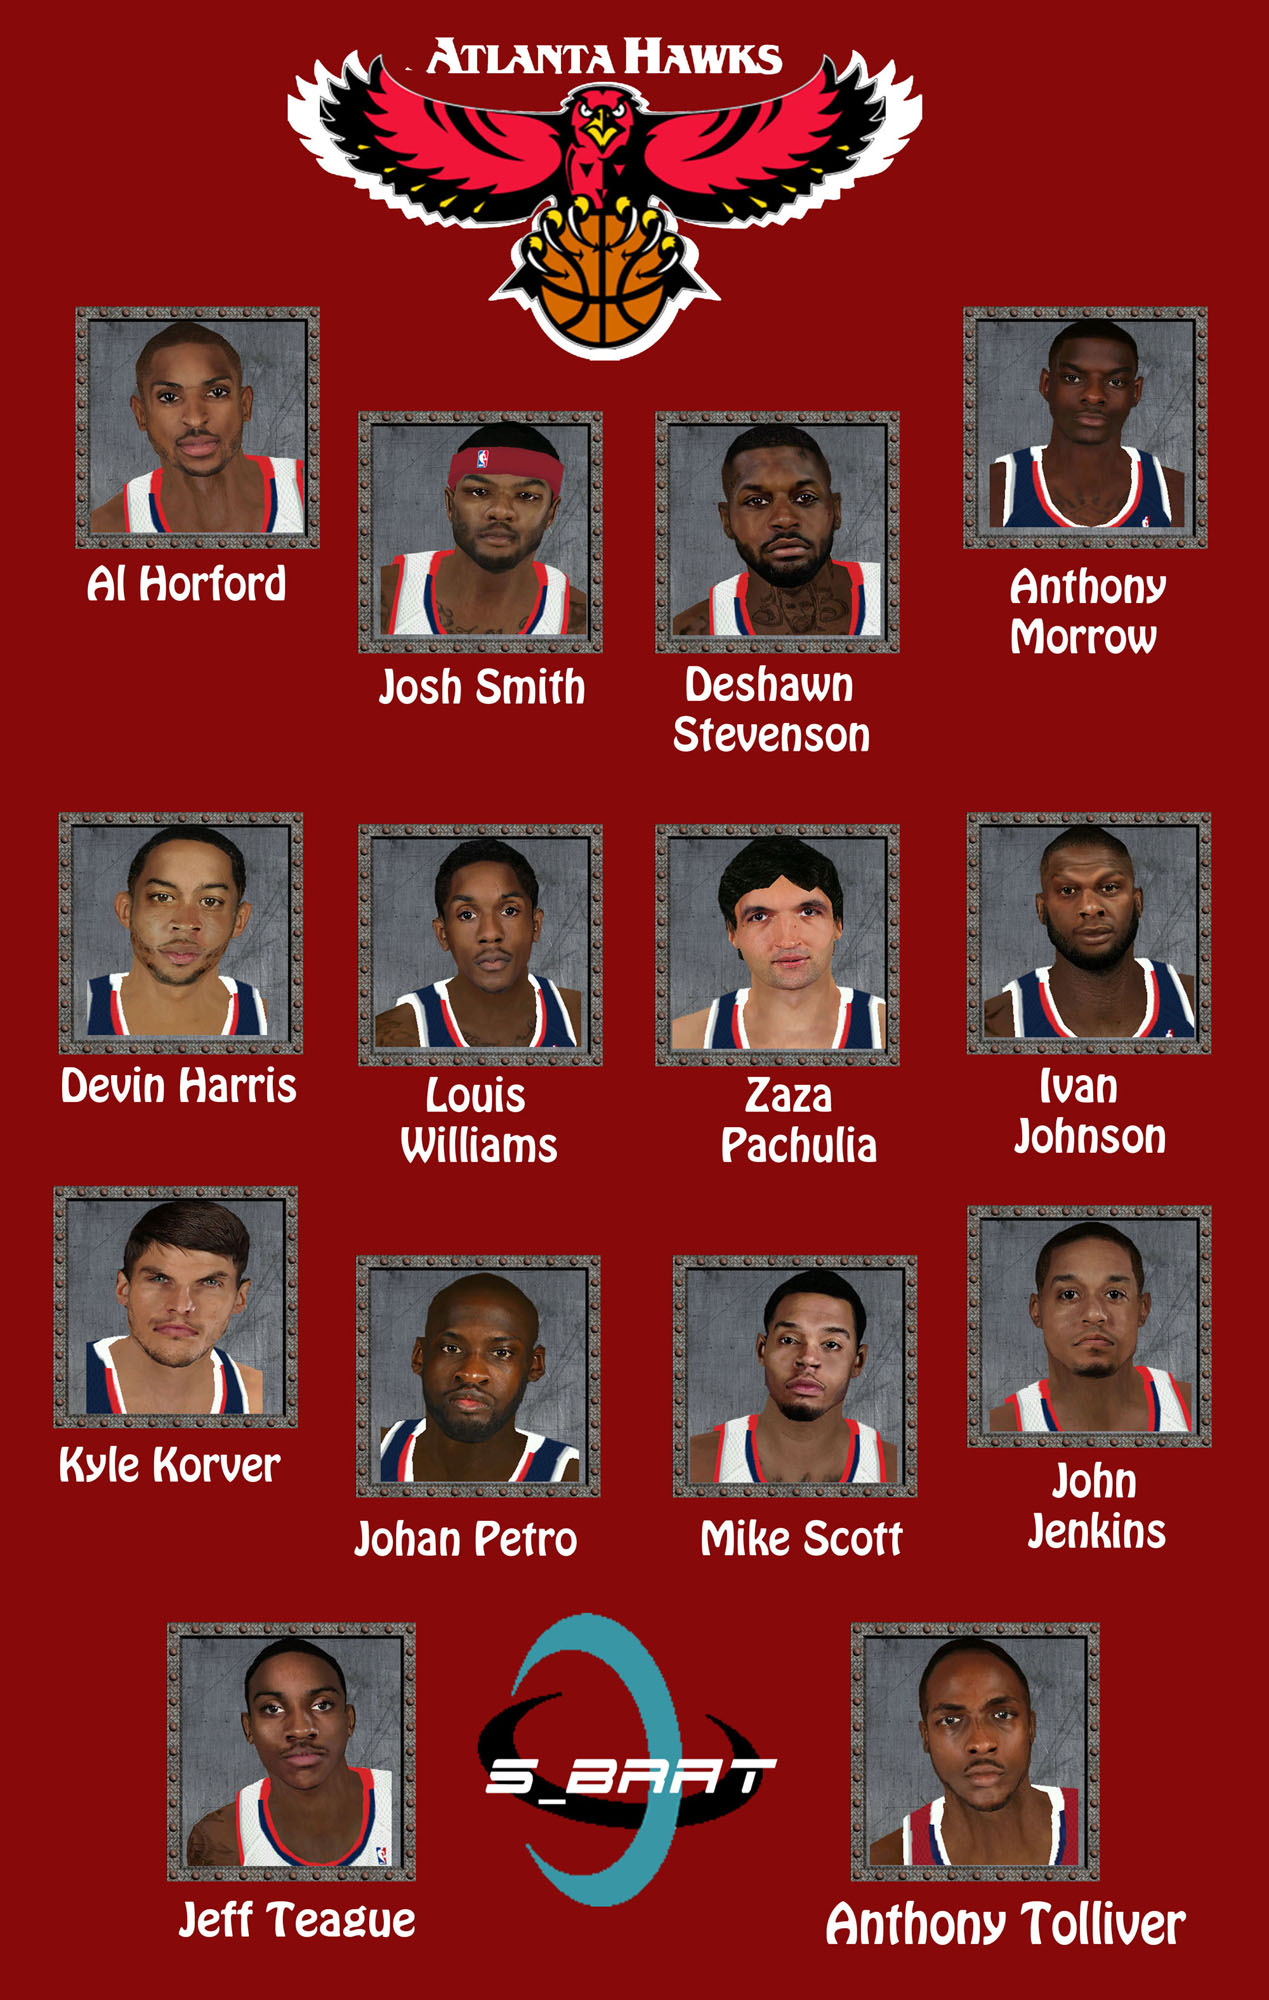 Atlanta Hawks 2013 Team Update